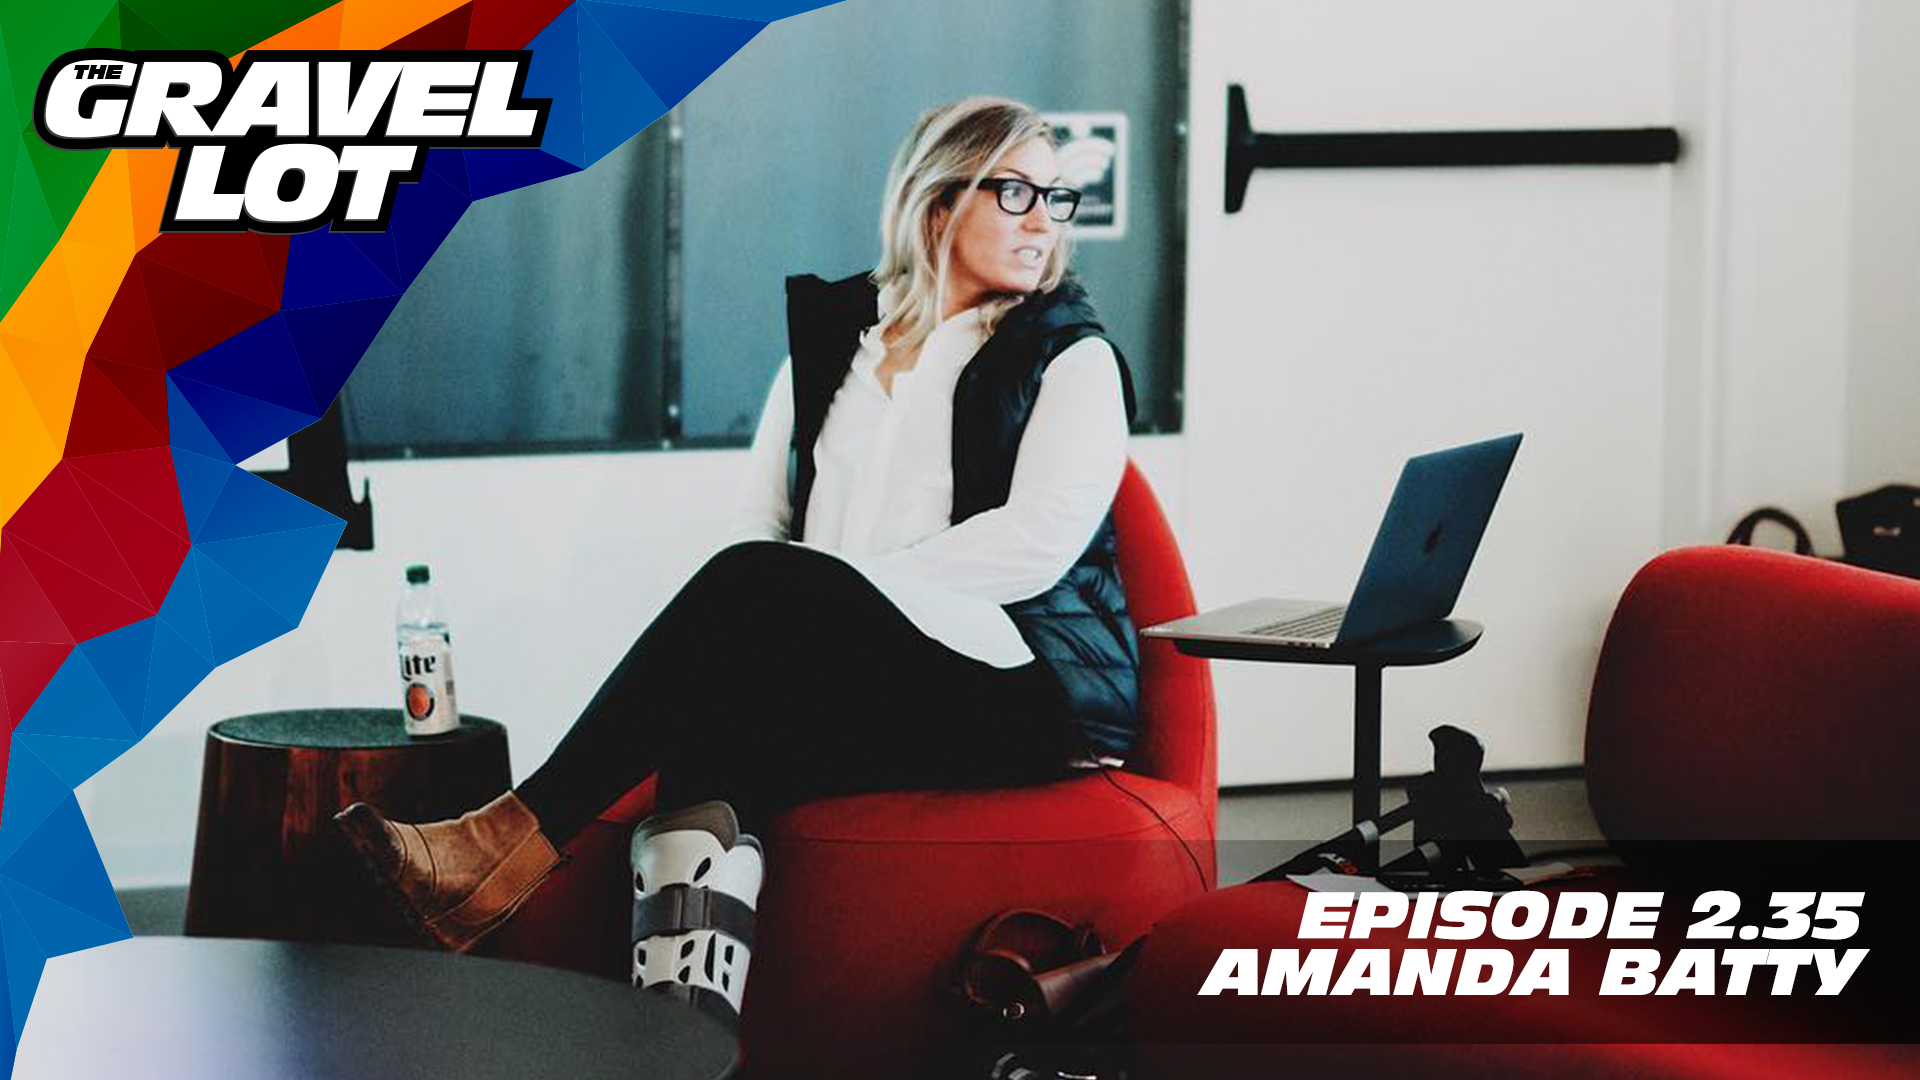 """After nearly losing her leg after a crash at the 2018 DH National Championships, Amanda Batty describes her past year as: A period of immense growth and massive change in every aspect of my life, and it's led to some incredible experiences, new lessons and what I can only describe as a fresh outlook on... Everything.   Exclusive Preview of Unknown Country: One man's inspirational journey to the Dirty Kanza XL    Visit The Gravel Lot website for our latest podcast, Real Talk videos, Bonus Content, shop, social media, and everything in between.    Grimpeur Brothers Coffee: Purchase The Full Schleck or Hello Cyclocross Friends Espresso and support WAP today!    Handup Gloves: Use code """"PEBBLE$"""" for 20% off EVERYTHING in store.    RoadID: Save $10 off ANY order over $20.    Magas Law Firm:    Be Free Ride Bikes:    Noxgear: Use code """"PEBBLES"""" for 35% off any item.   Subscribe to The Gravel Lot on the  Wide Angle Podium Network and become a member TODAY and get access to EXCLUSIVE bonus content.   Learn more about Undertipper and download their latest album """"Y'all"""" at:  http://undertipper.bandcamp.com/"""